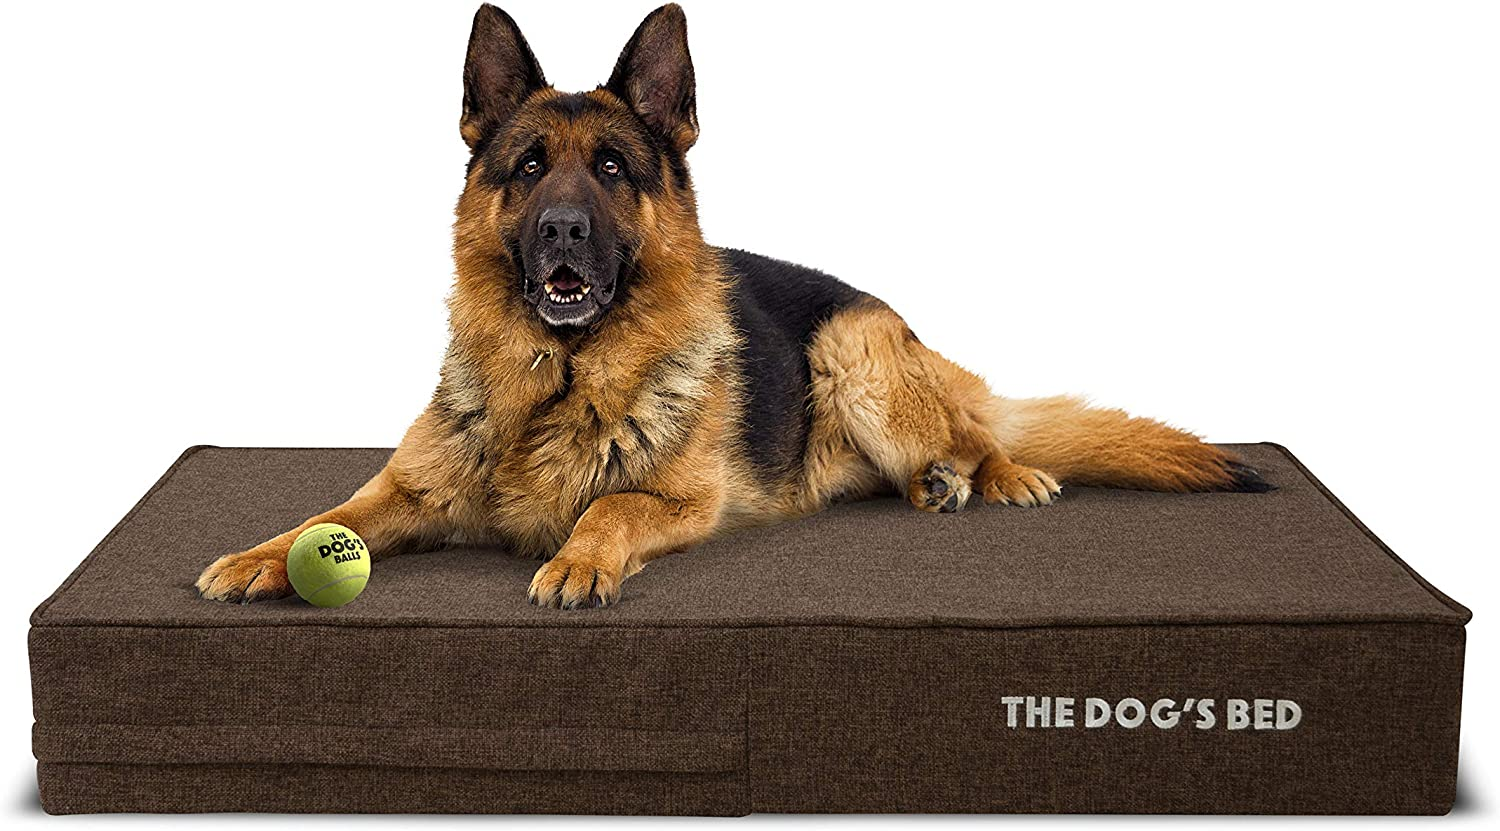 Waterproof Calming Bed Dog Pain Relief for Arthritis Washable Cover Lameness The Dog/'s Bed Orthopedic Dog Bed Hip /& Elbow Dysplasia Post Surgery Premium Memory Foam S-XXXL Senior Supportive